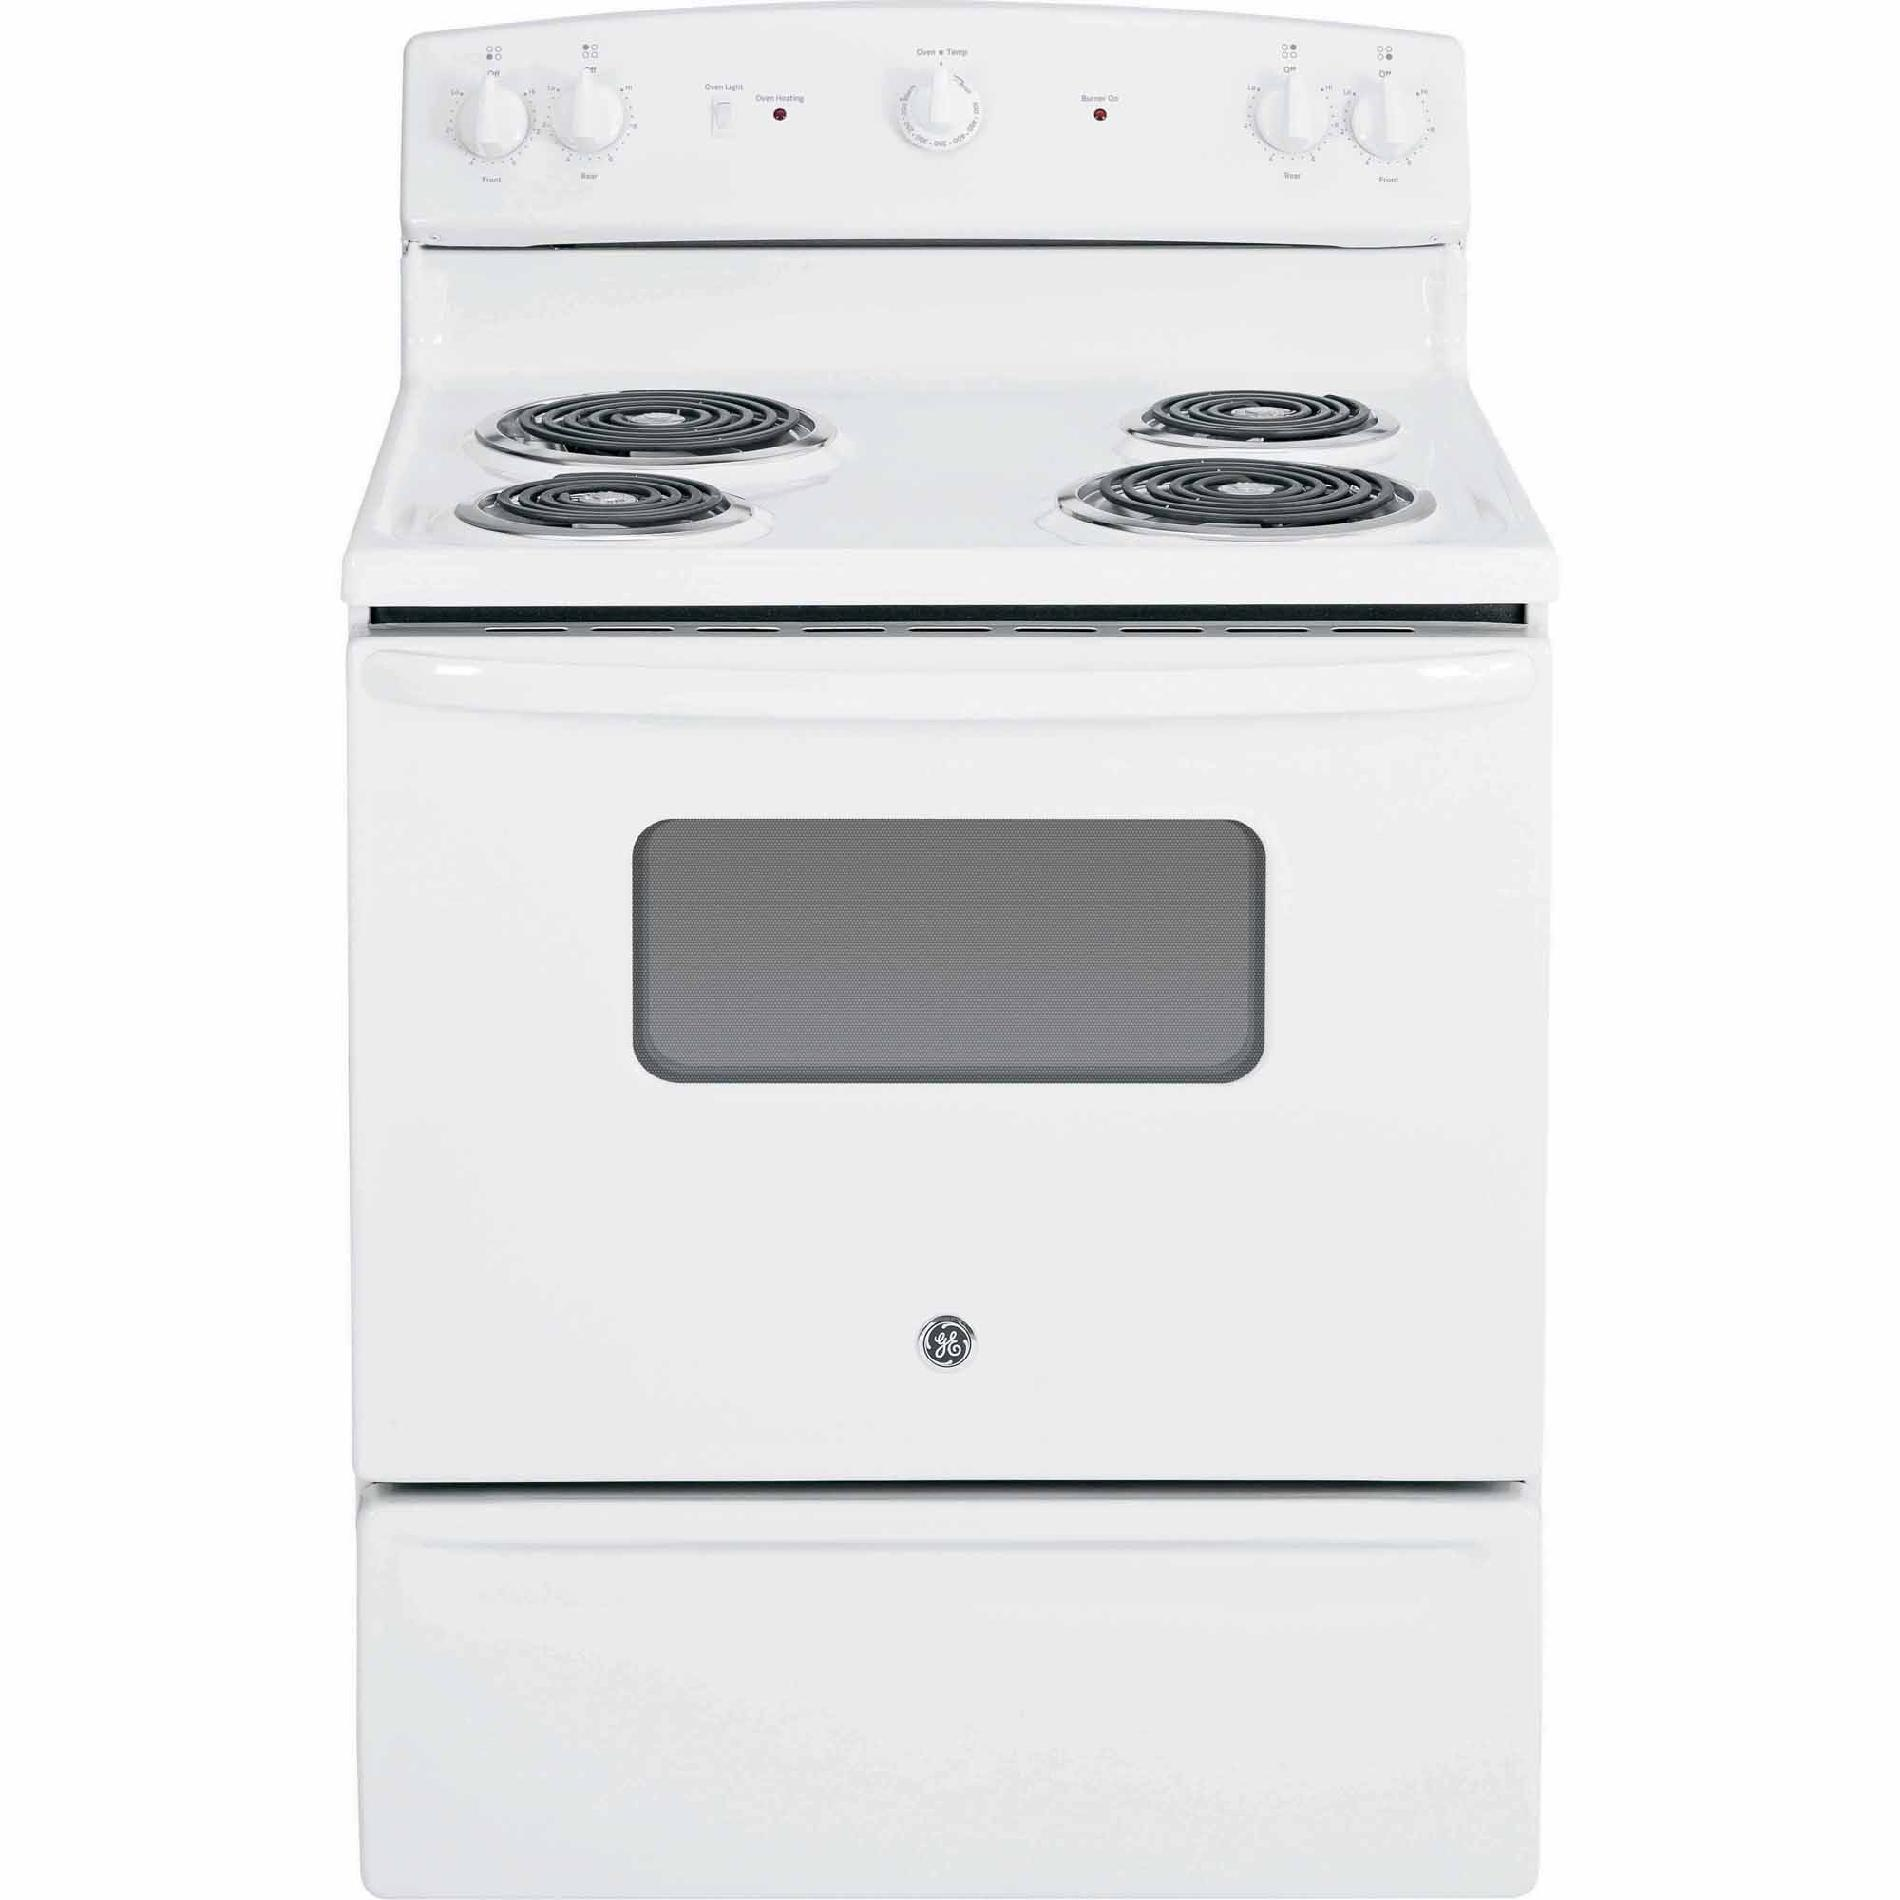 GE Appliances JBS10DFWW 5.0 cu. ft. Electric Range - White